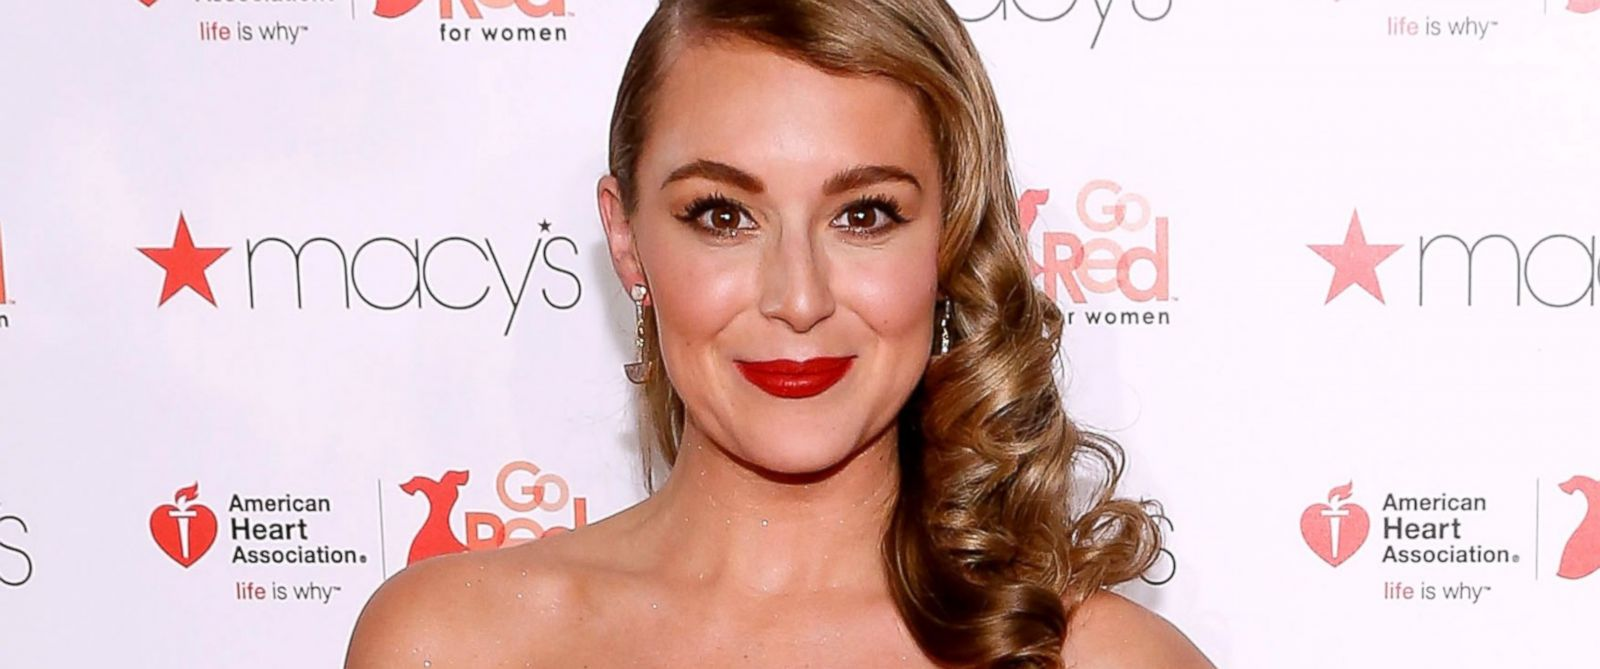 PHOTO: Alexa PenaVega attends the 2016 Go Red for Women Dress Collection at Skylight at Moynihan Station, Feb. 11, 2016, in New York City.